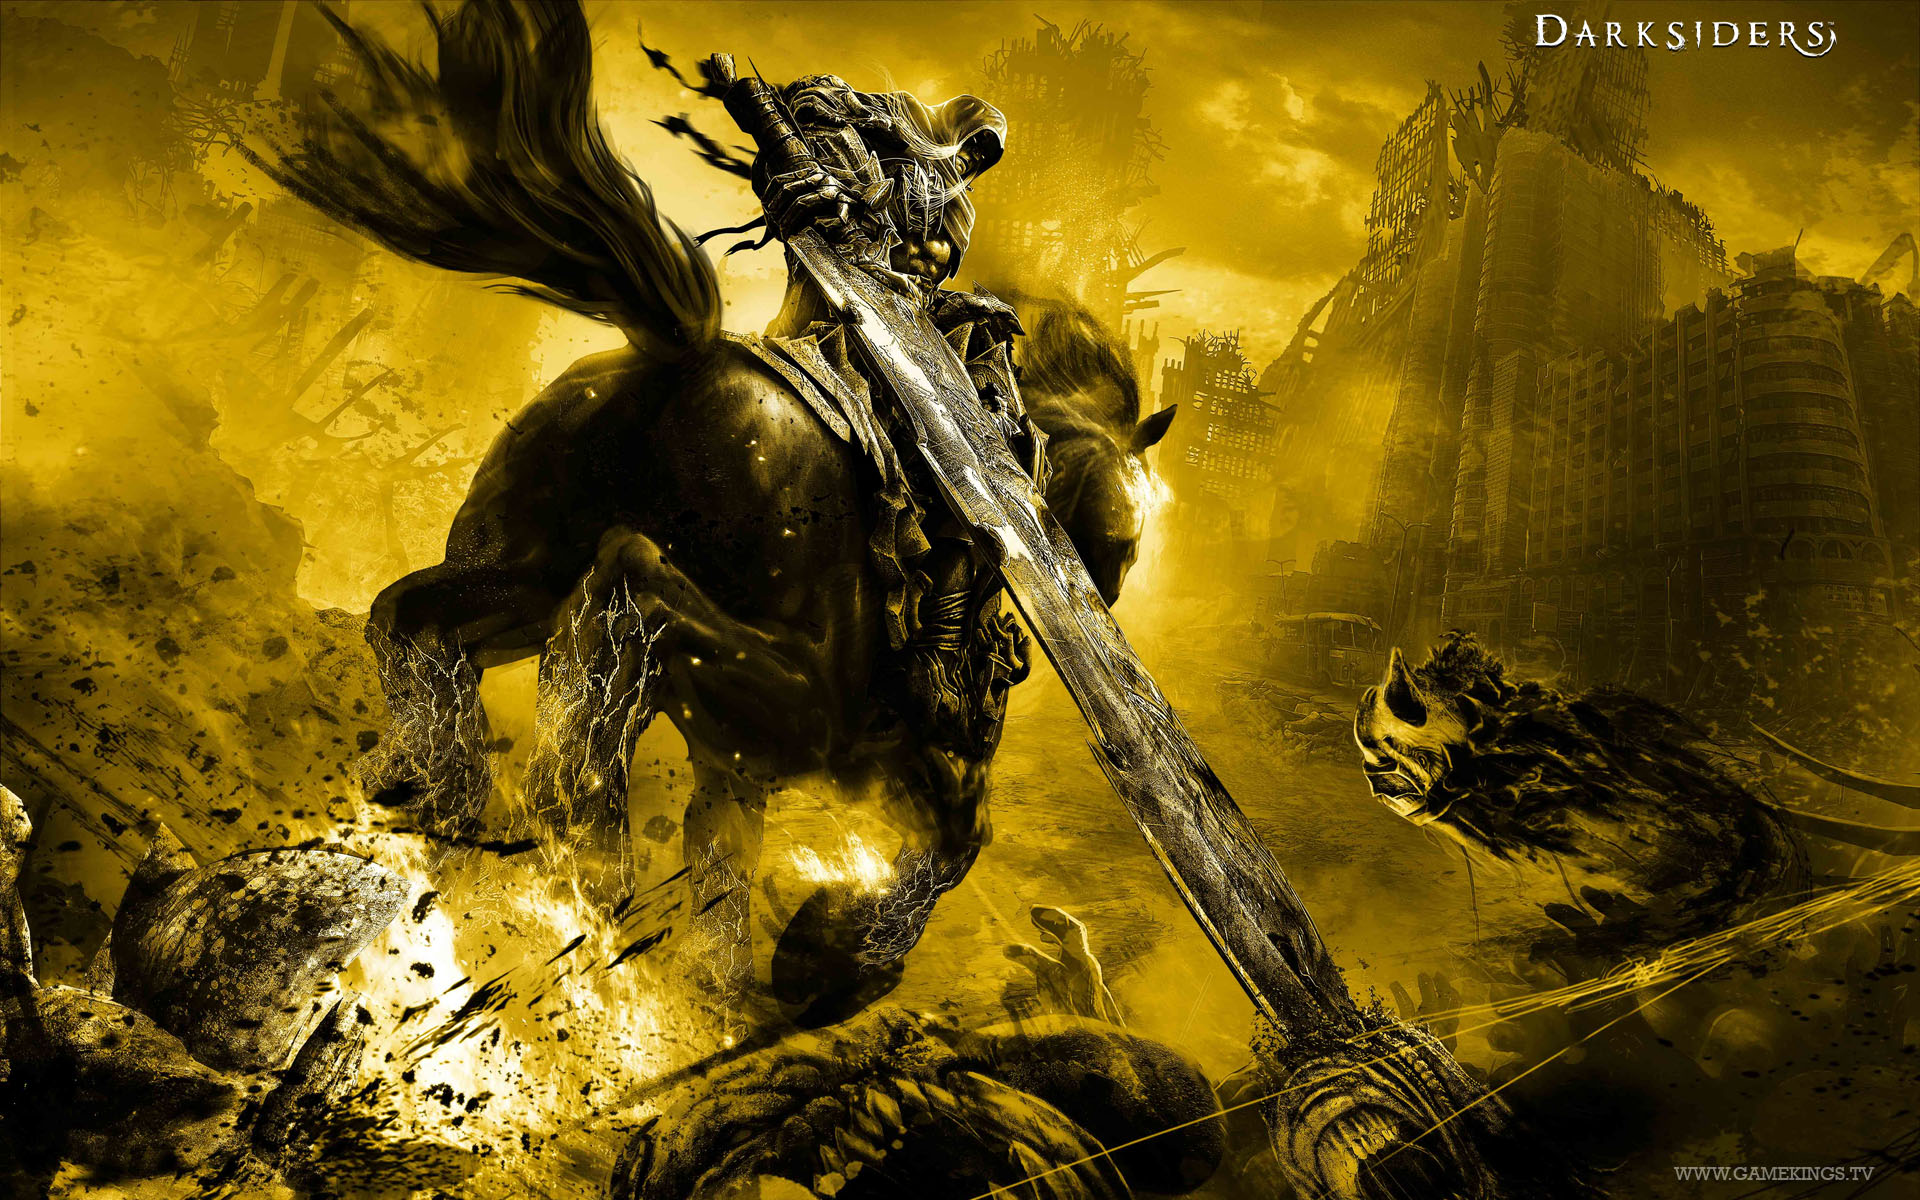 Darksiders Wallpaper 1920x1200 Darksiders 1920x1200